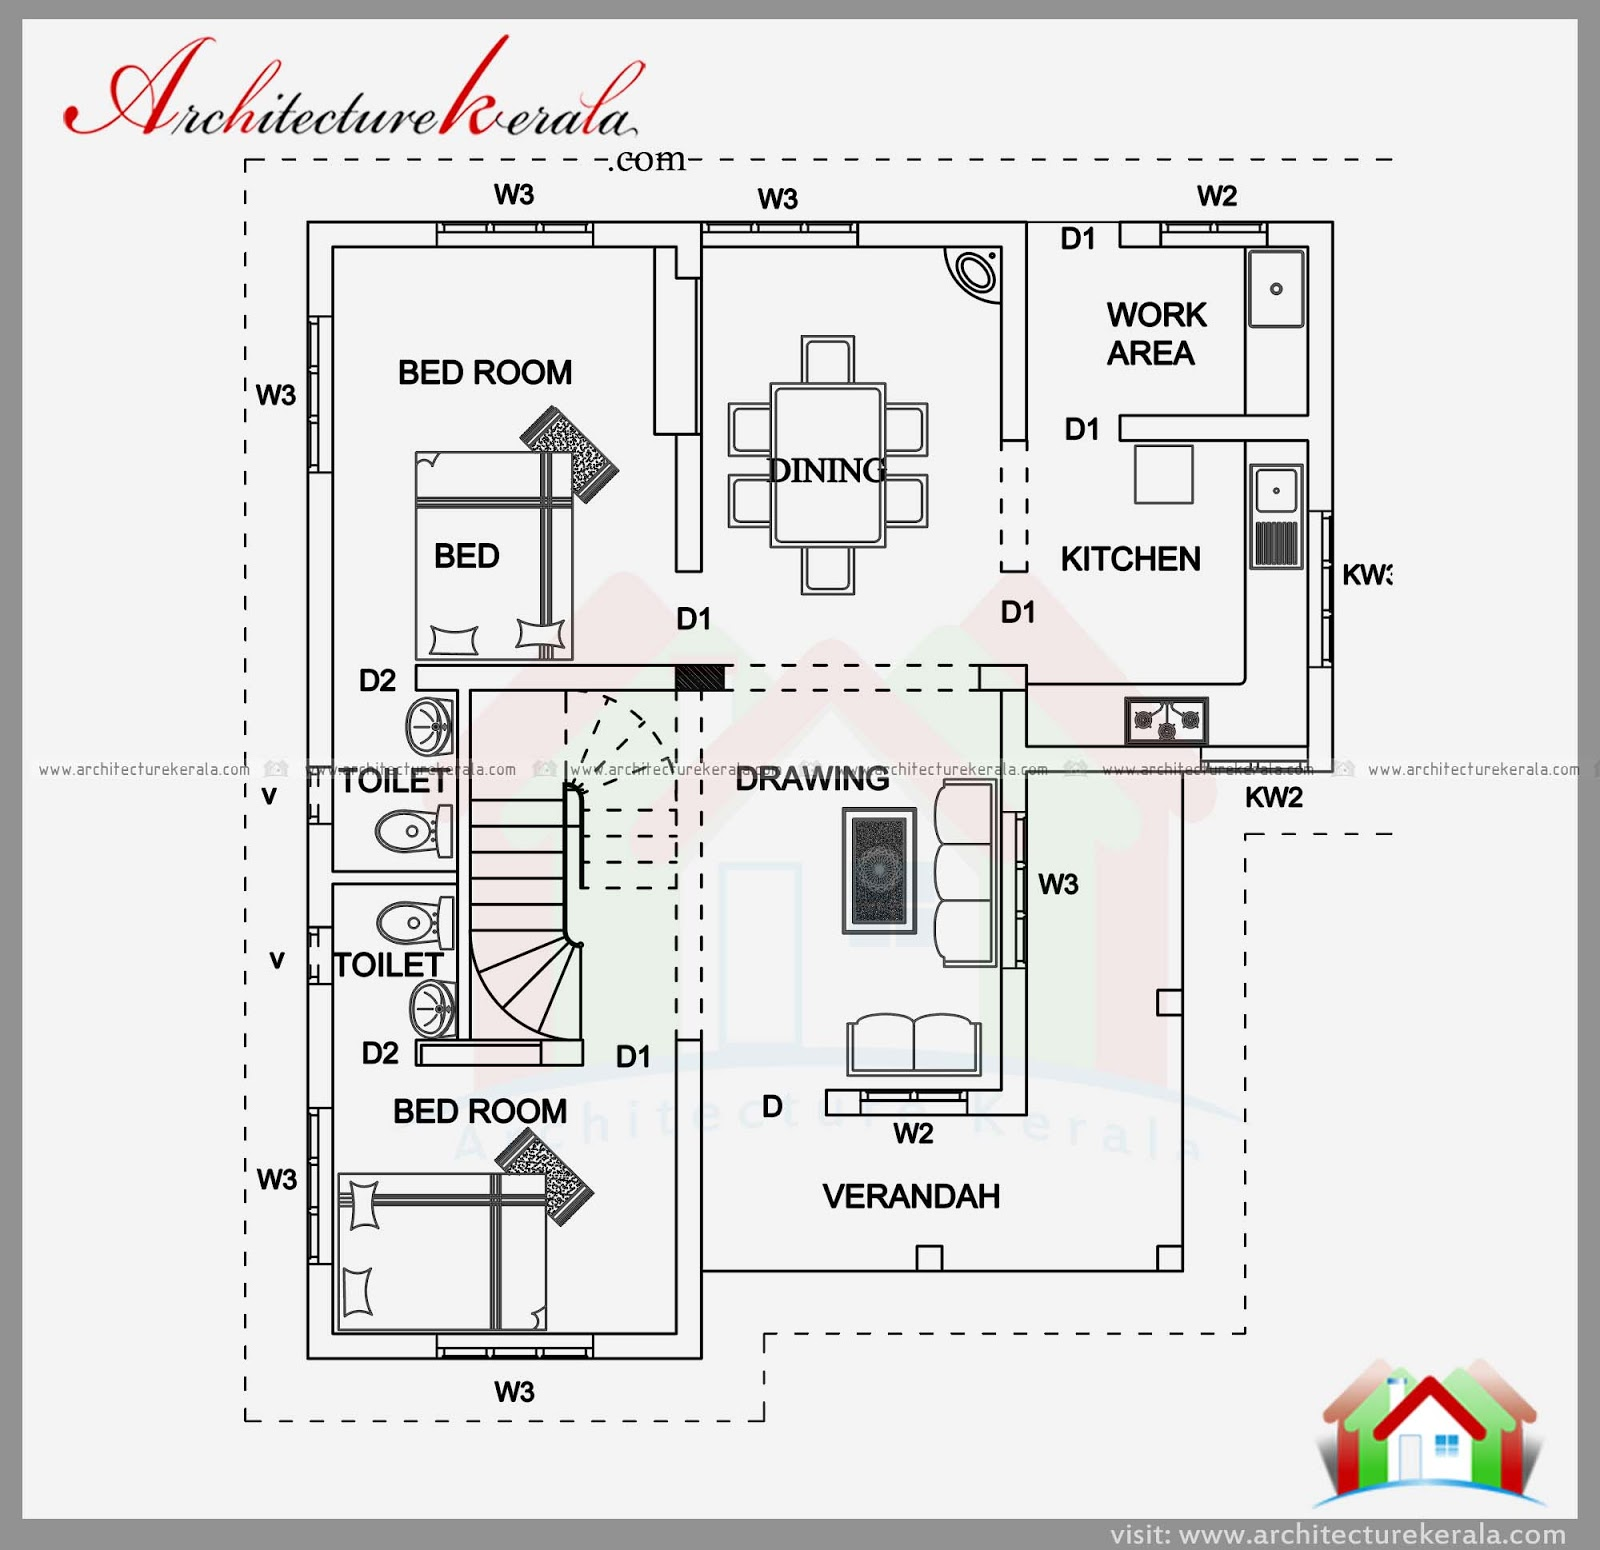 1900 sqft house plan and elevation architecture kerala for House plans 1900